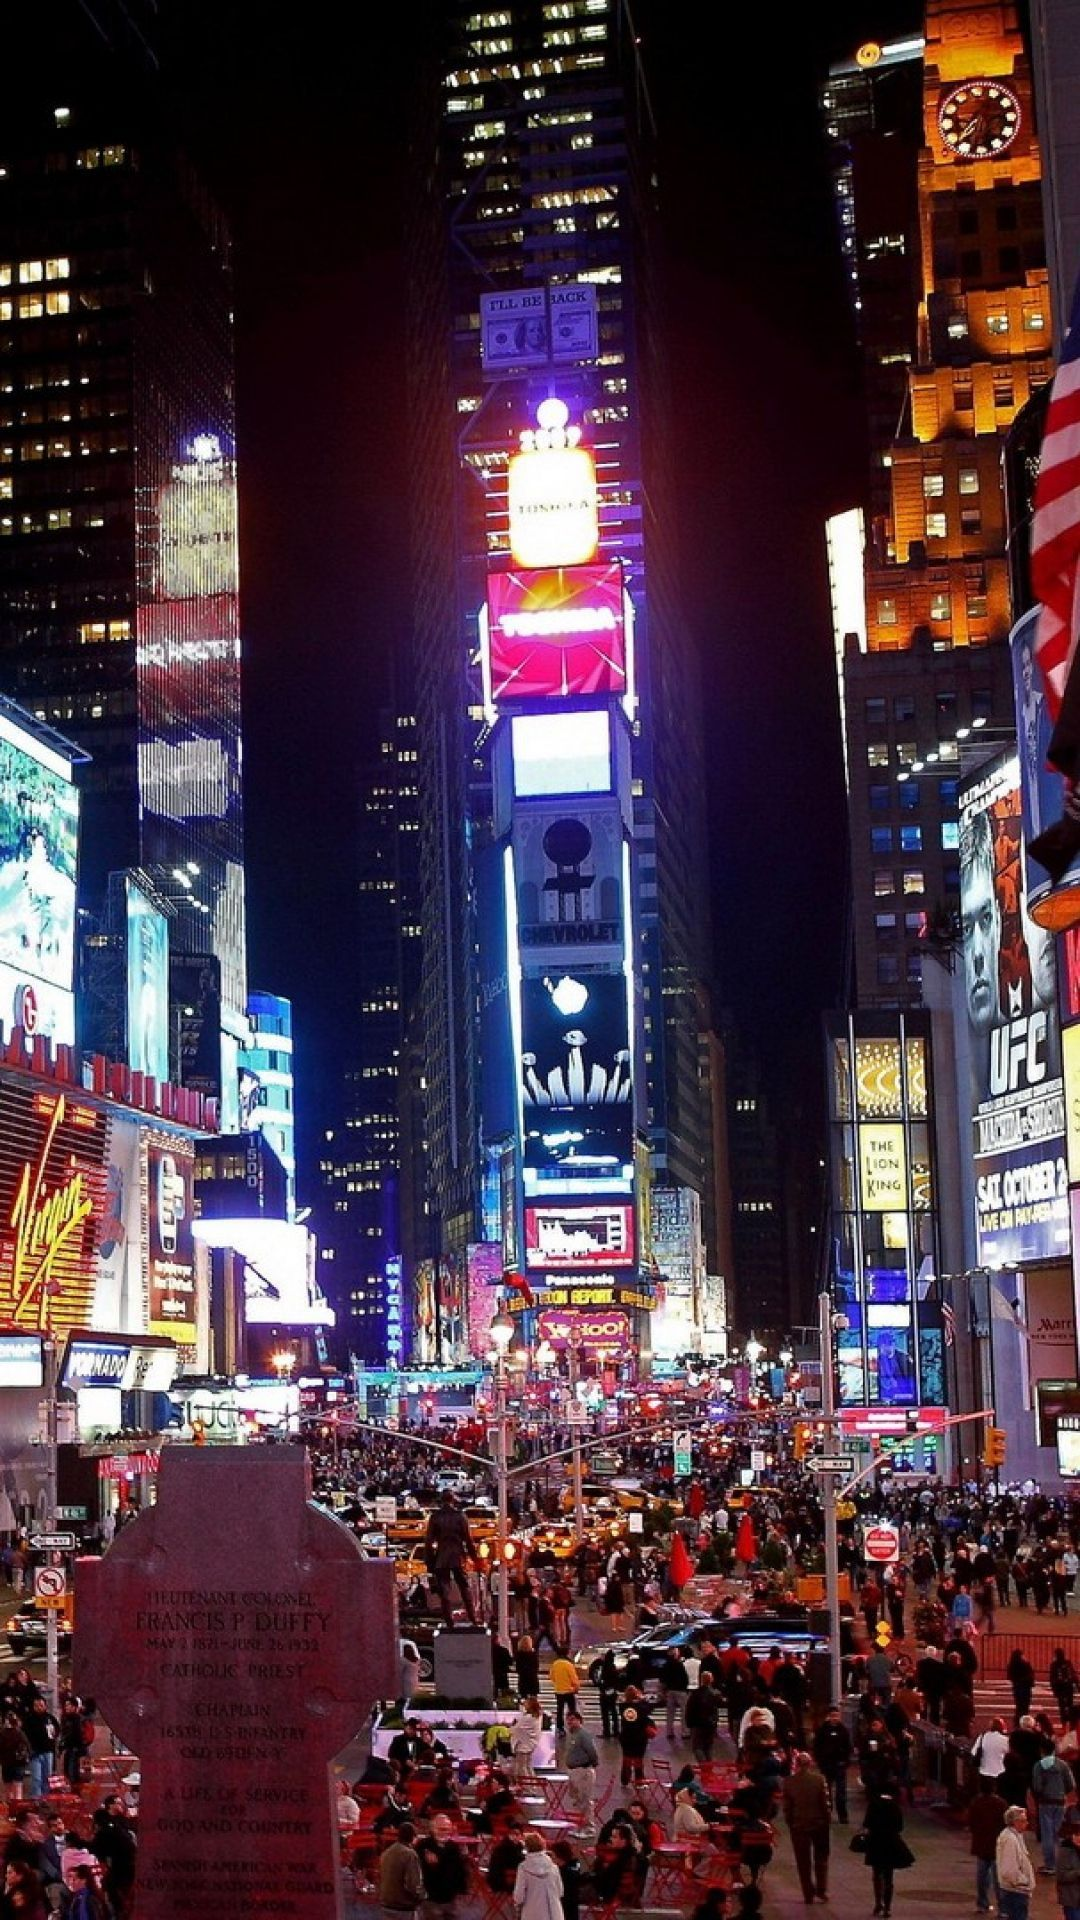 Hd background new york city manhattan times square street night hd background new york city manhattan times square street night voltagebd Image collections